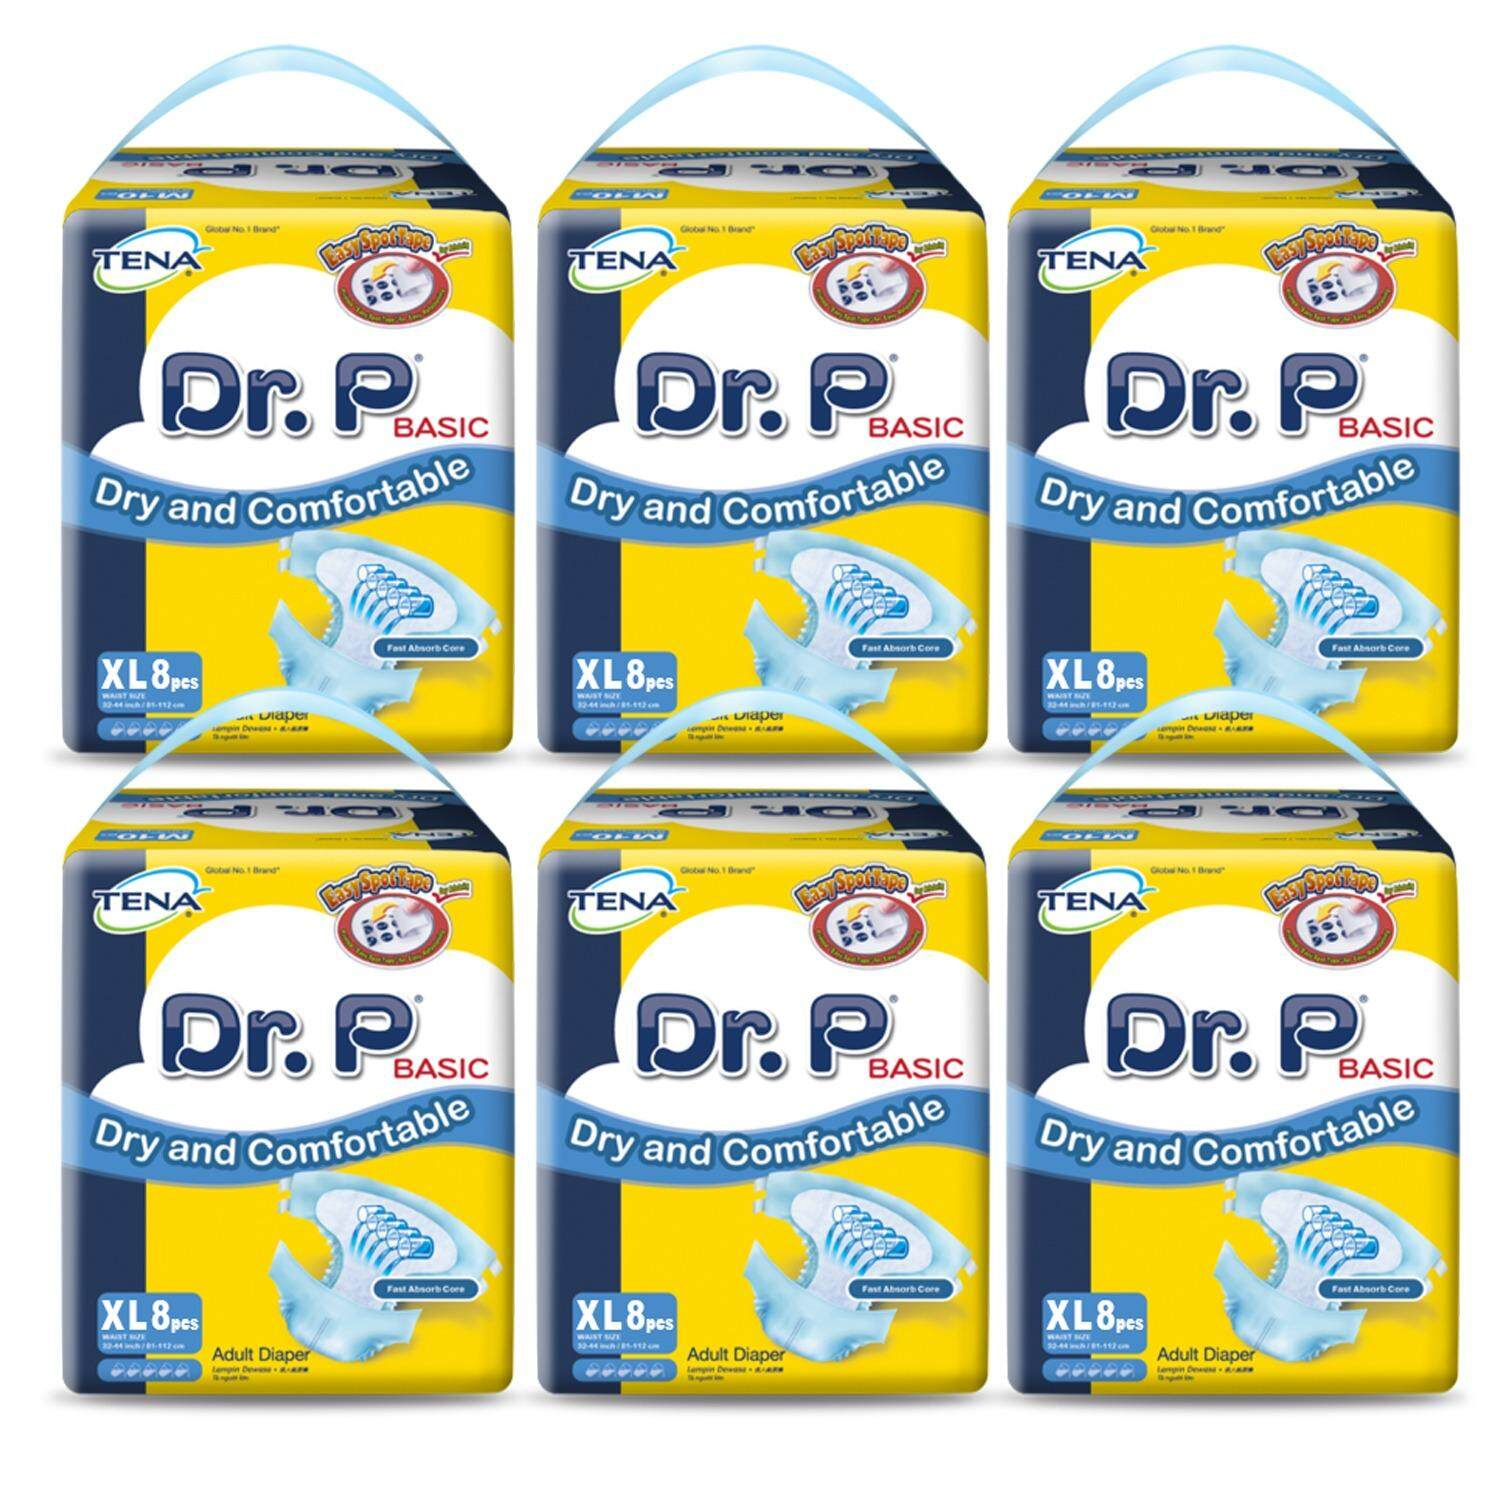 Tena Products For The Best Prices In Malaysia Popok Dewasa Compidence Xl15 Dr P Basic Adult Diapers Xl 8s X 6 Packs